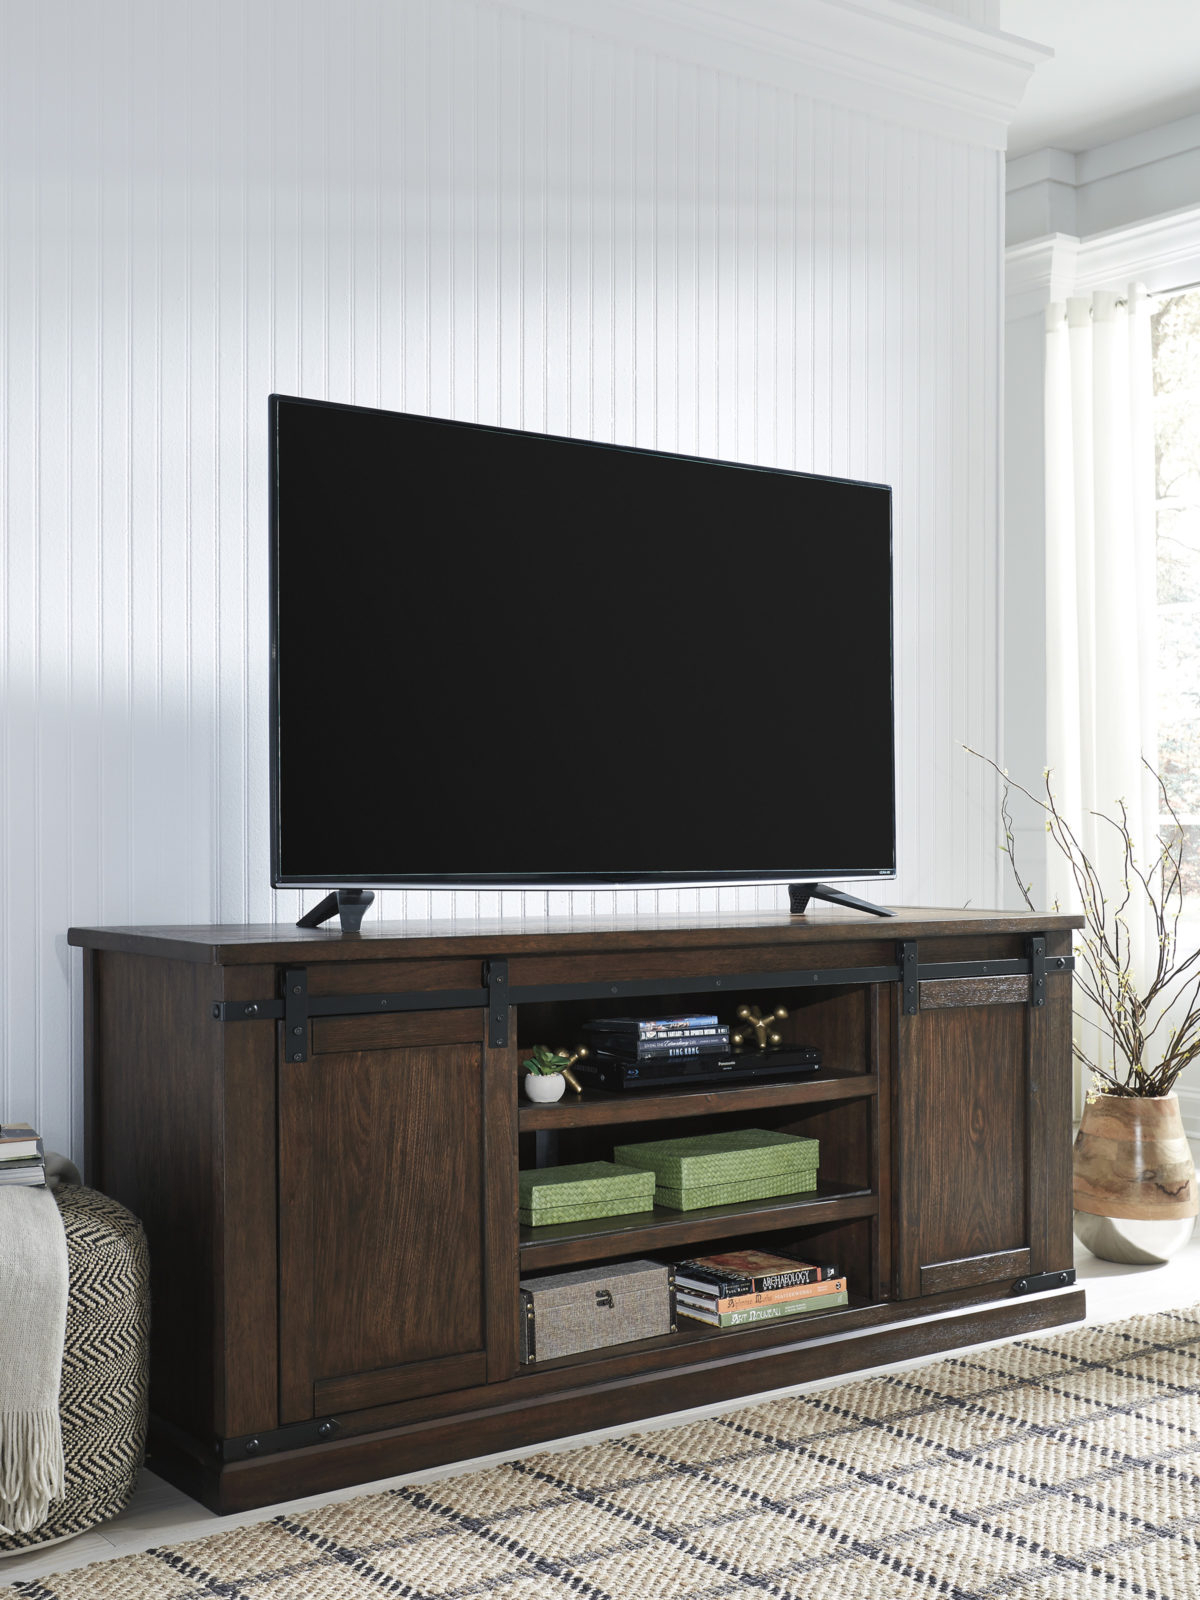 Budmore Extra Large Tv Stand (View 6 of 11)